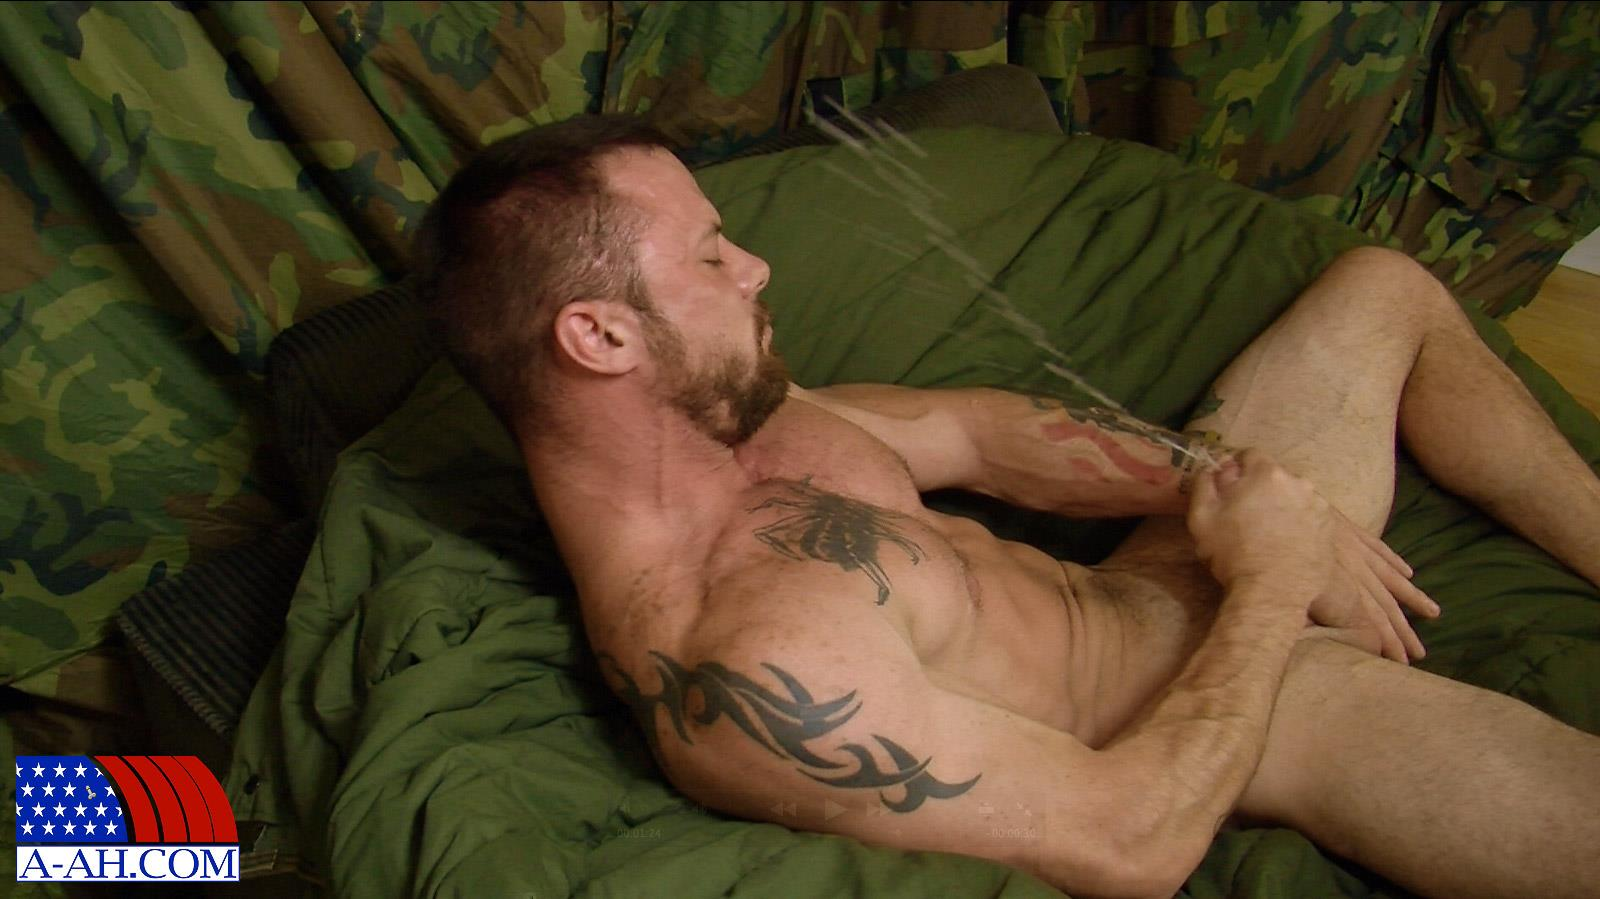 All-American-Heroes-Sergeant-Miles-Army-Guy-Jerking-Off-Big-Cock-And-Fingering-Ass-Amateur-Gay-Porn-13 Happy Veterans Day: Straight US Army Sergeant Jerks His Thick Cock